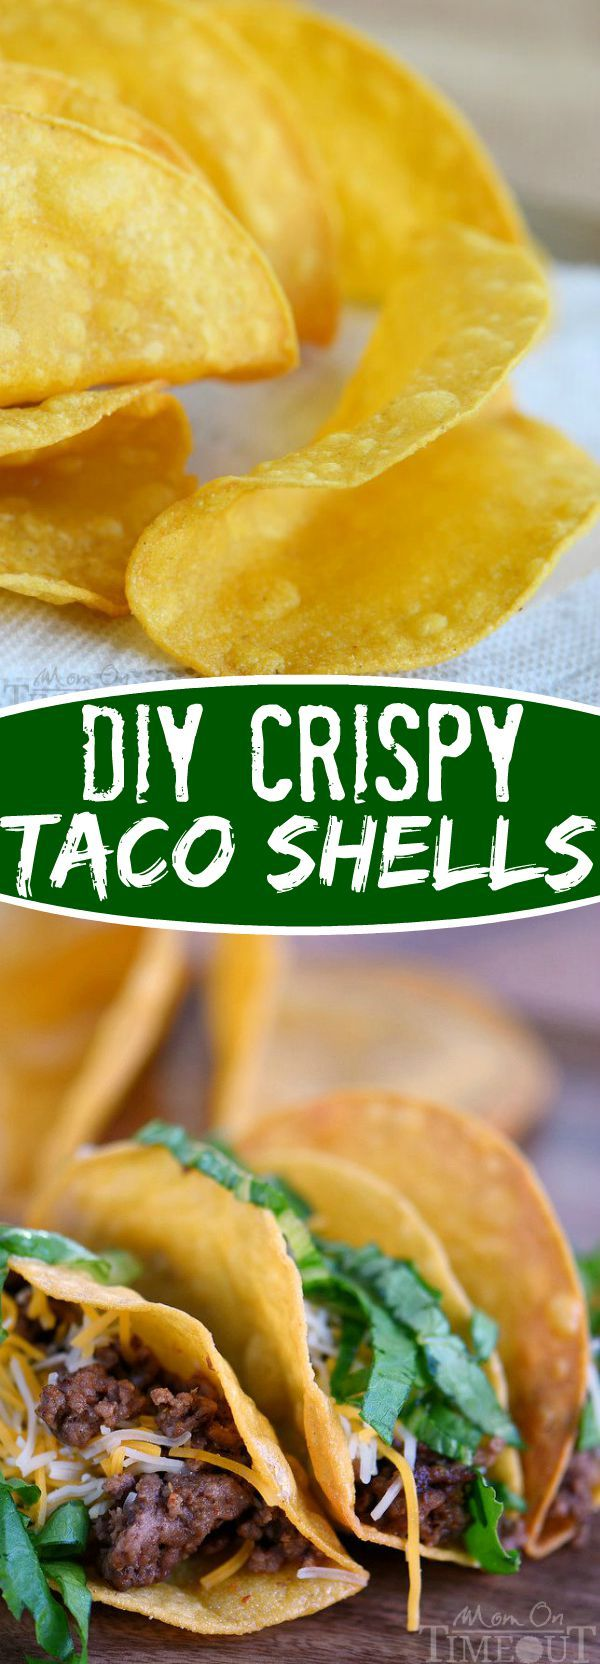 DIY Crispy Taco Shells - easy step by step instructions will have you eating delicious, crunchy tacos tonight! | eBay: